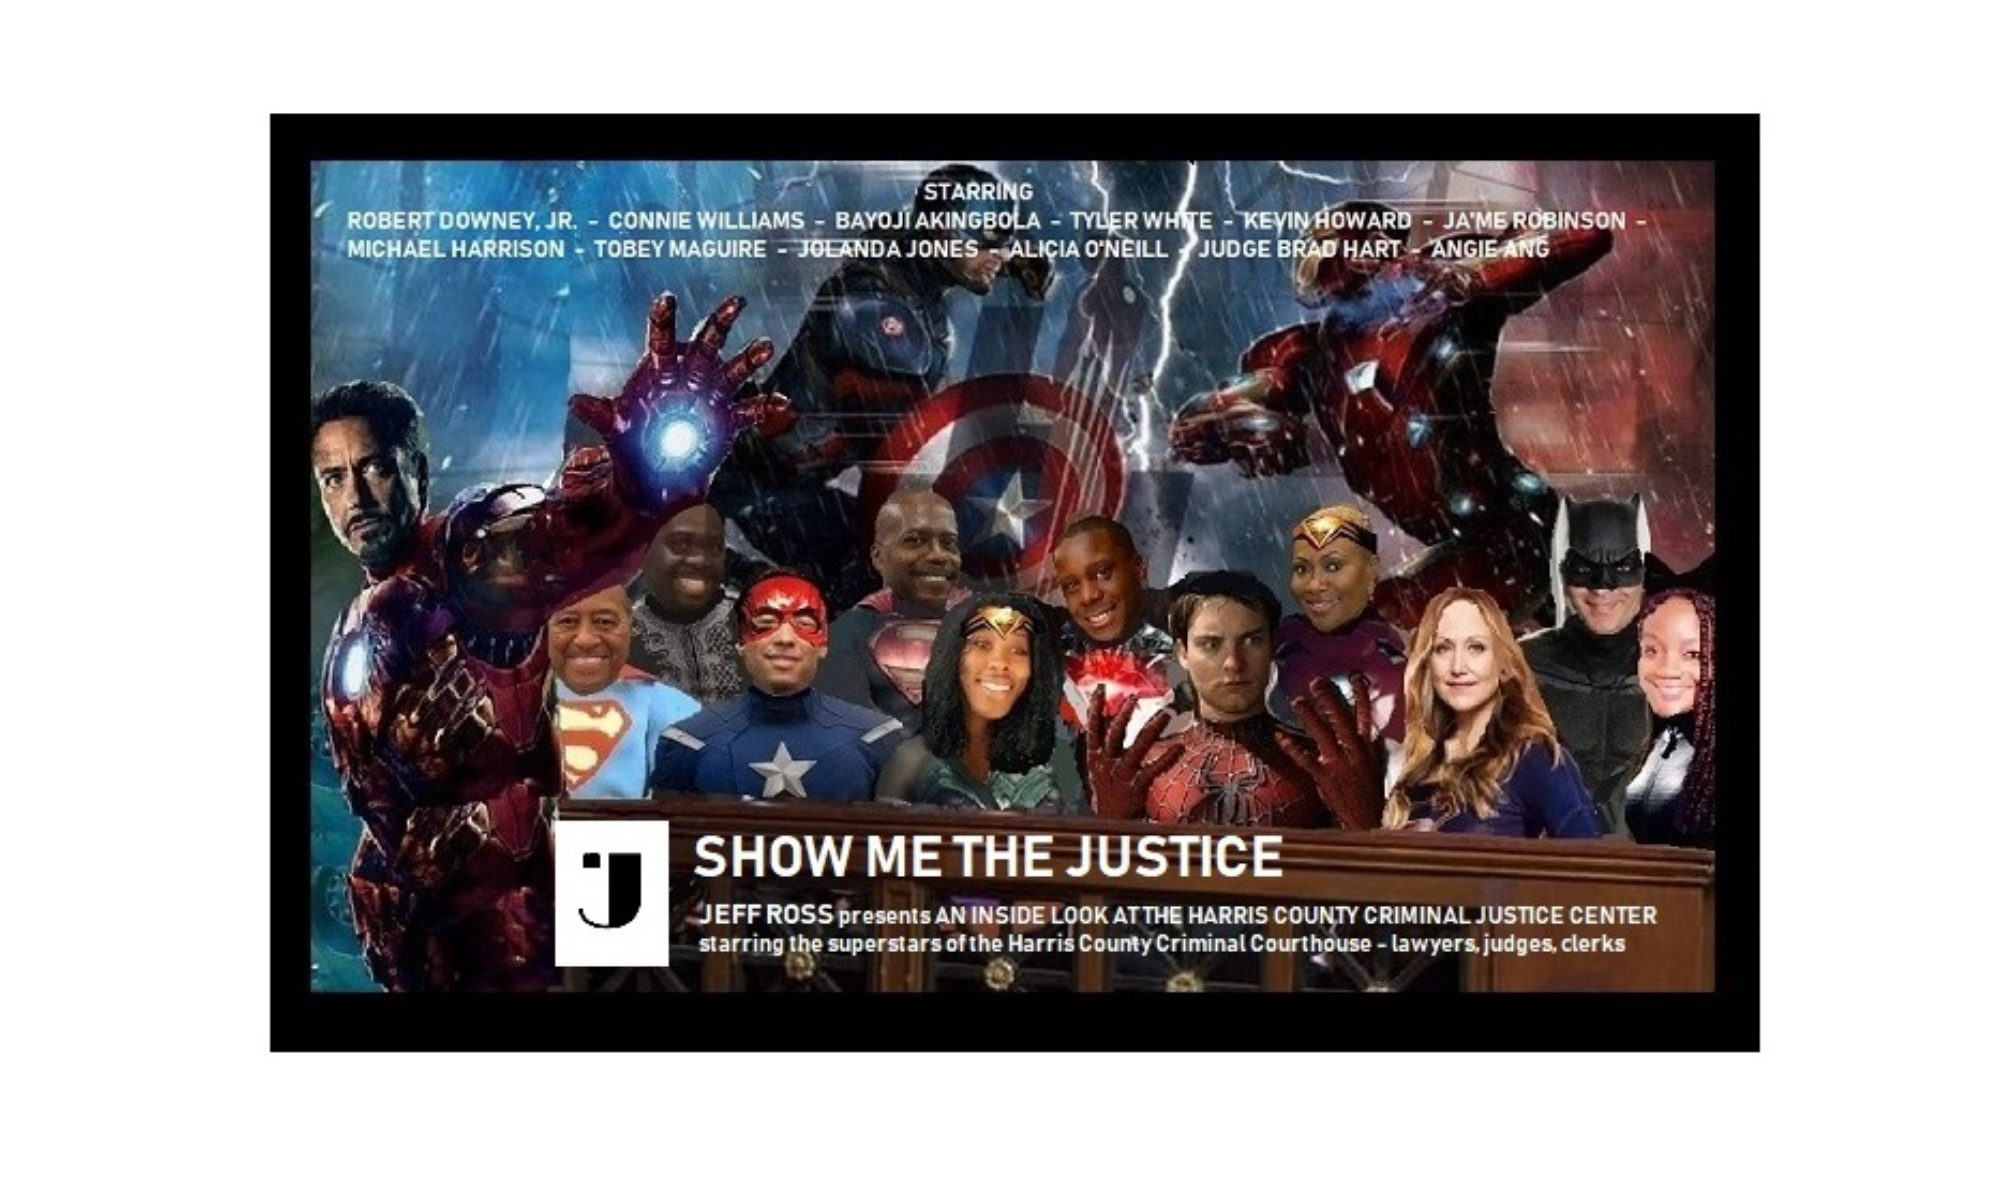 SHOW ME THE JUSTICE!